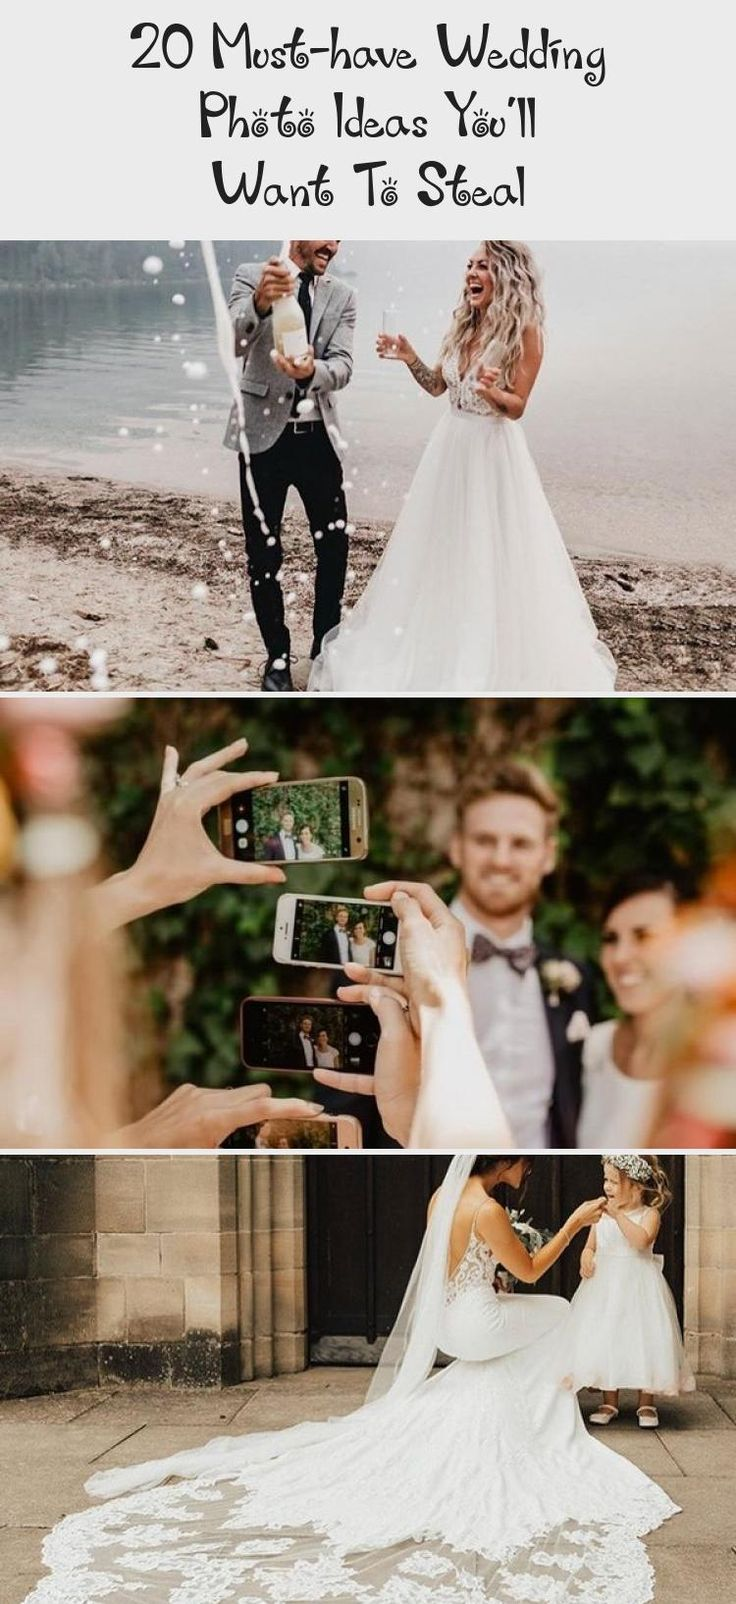 20 Must-have Wedding Photo Ideas You'll Want To Steal